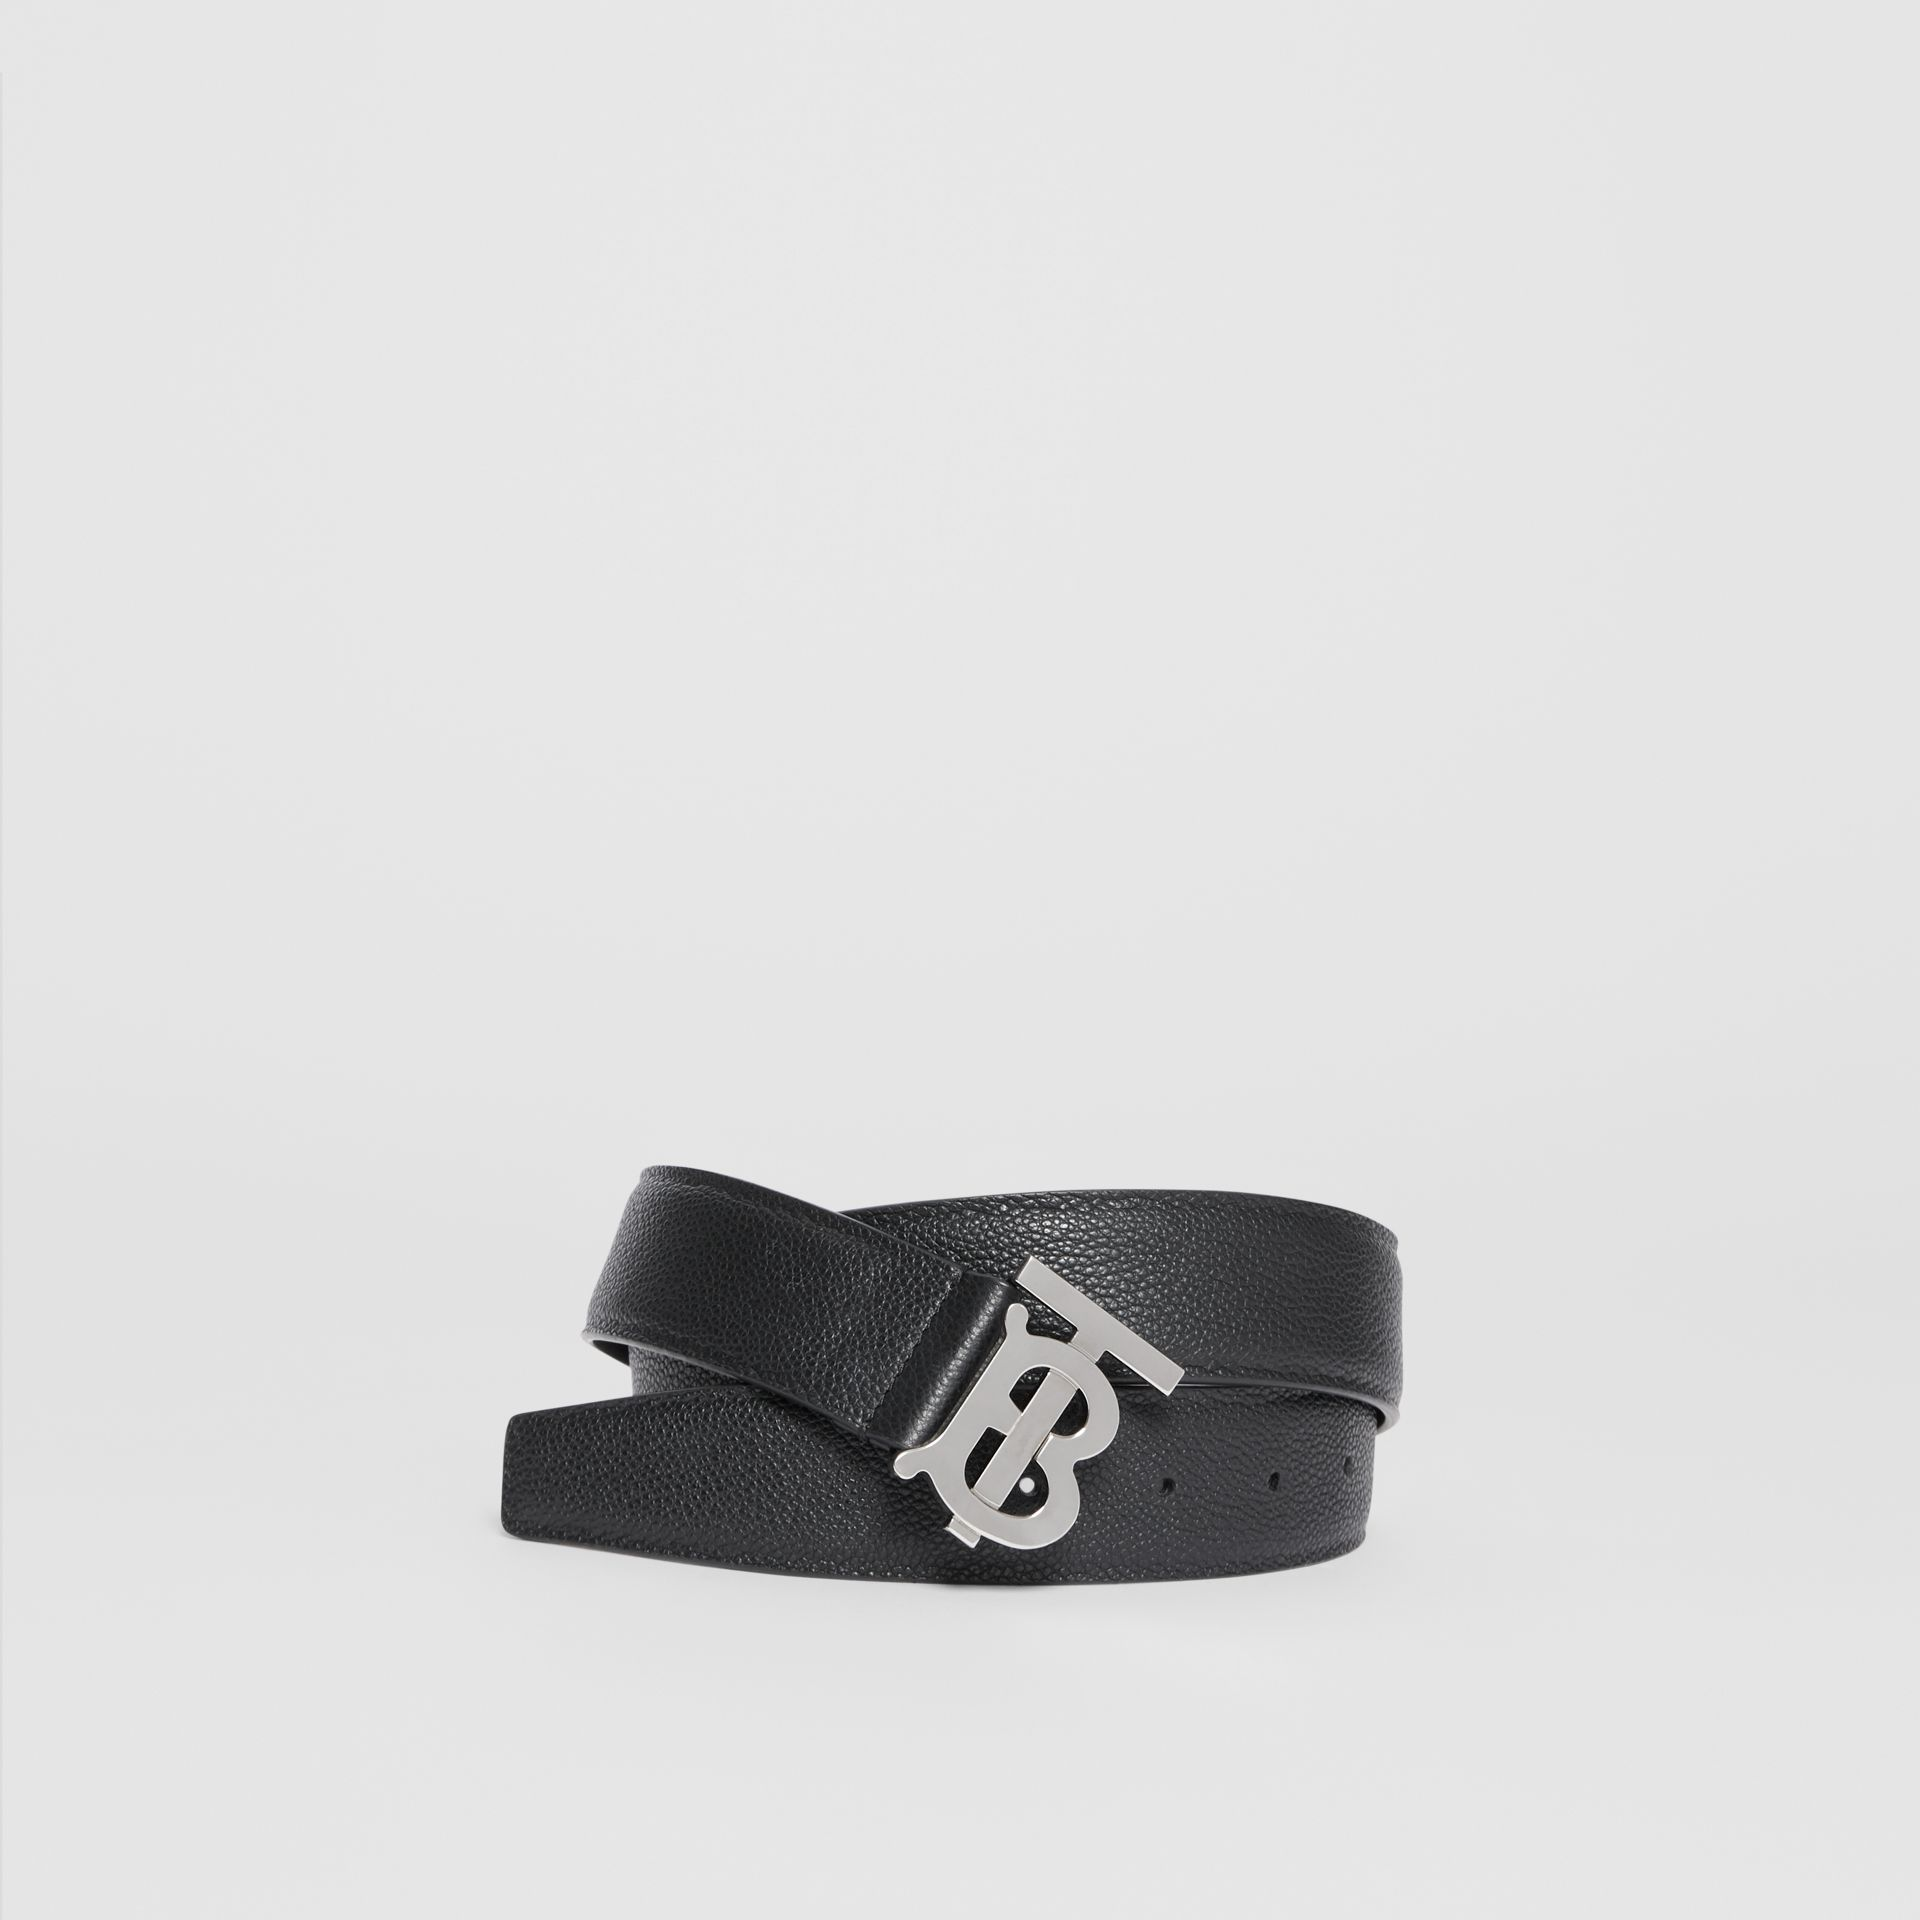 Monogram Motif Grainy Leather Belt in Black - Men | Burberry United States - gallery image 0